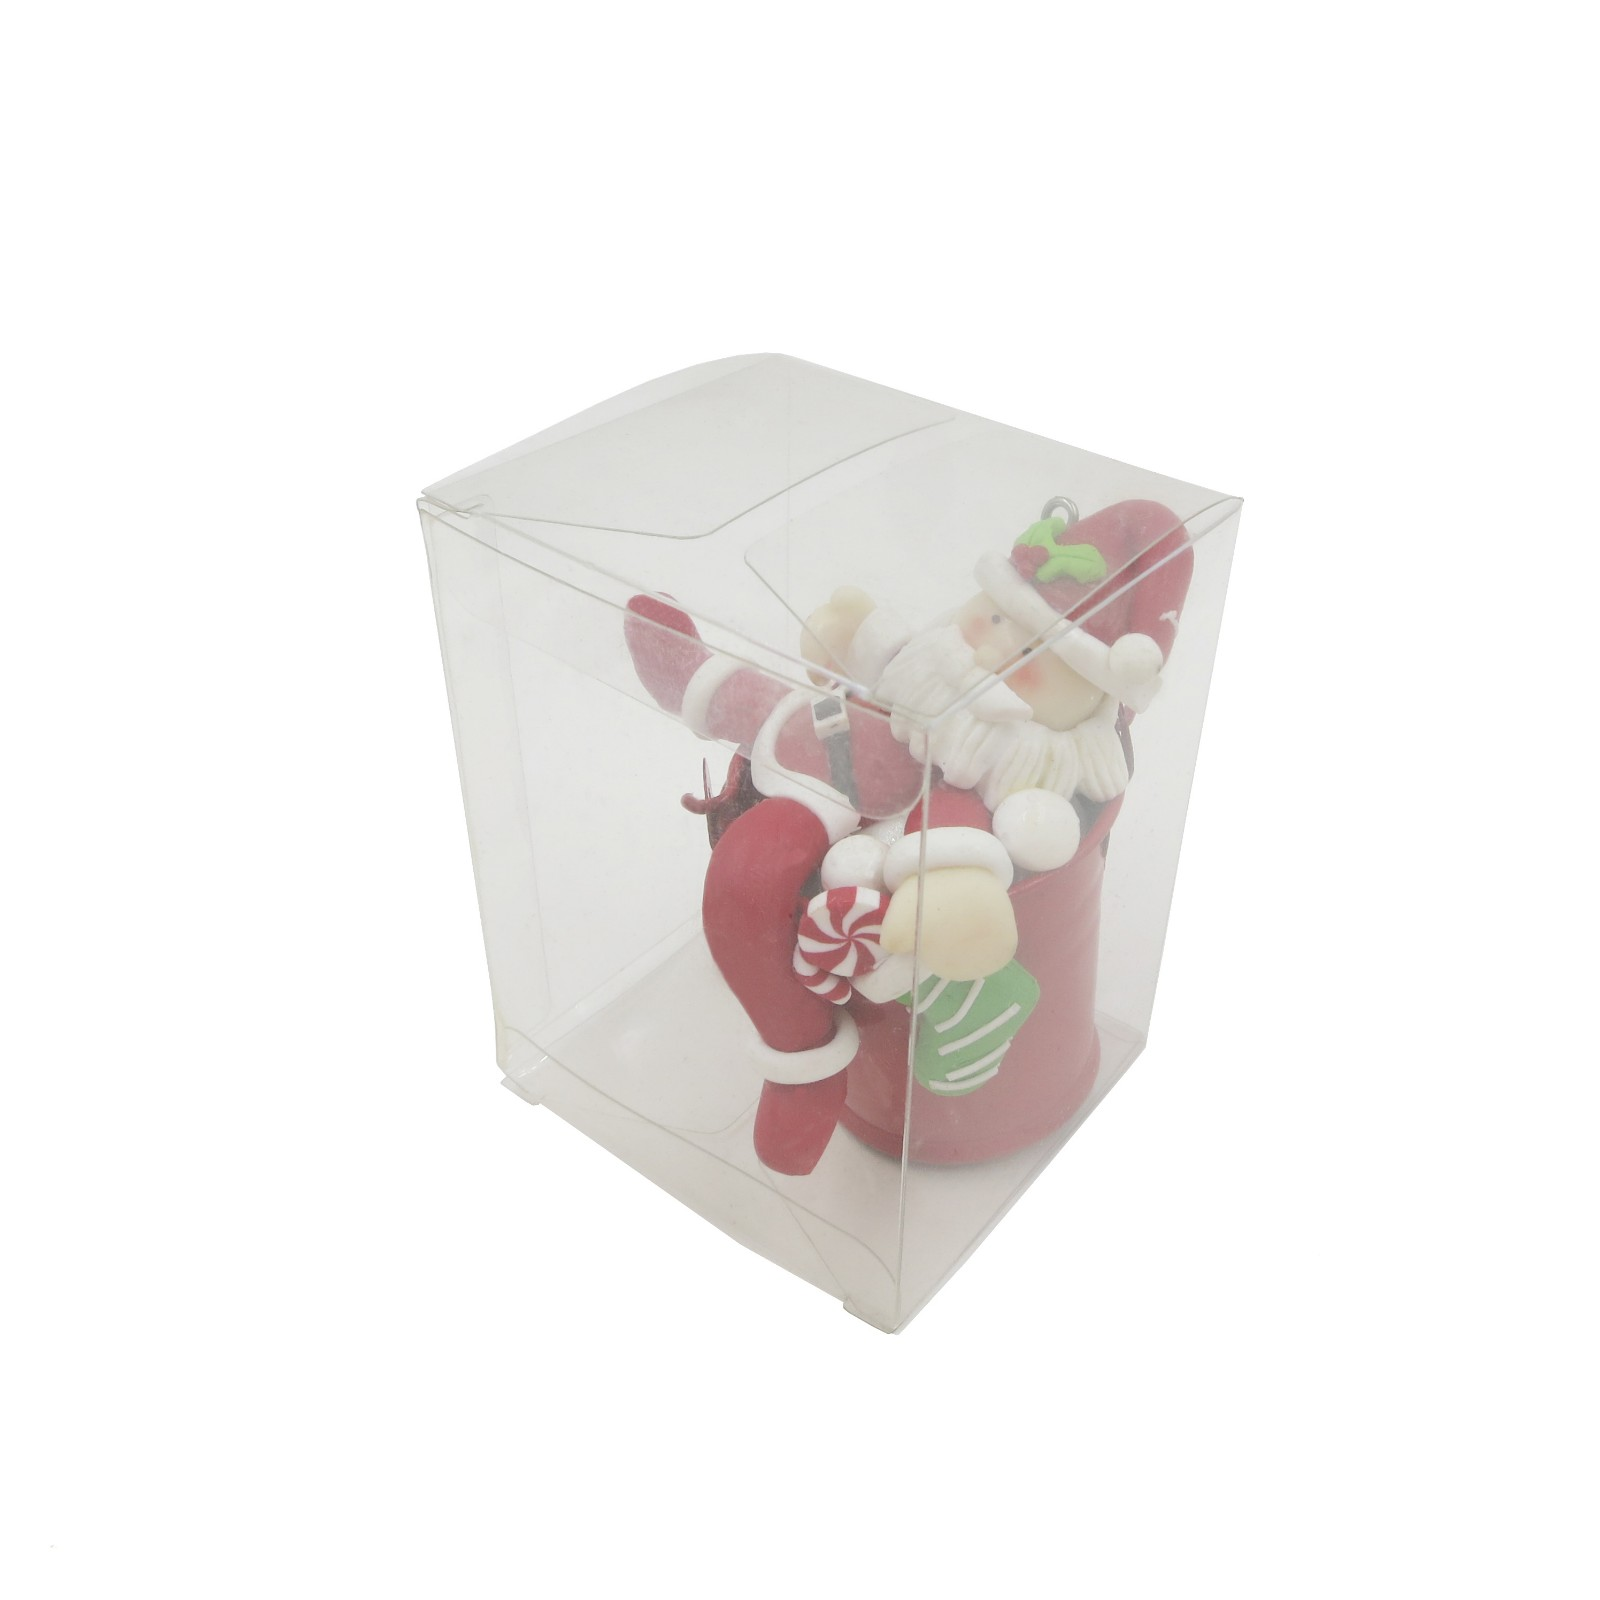 Yijianxing Plastic Products superior plastic box packaging long-term-use for gifts-5